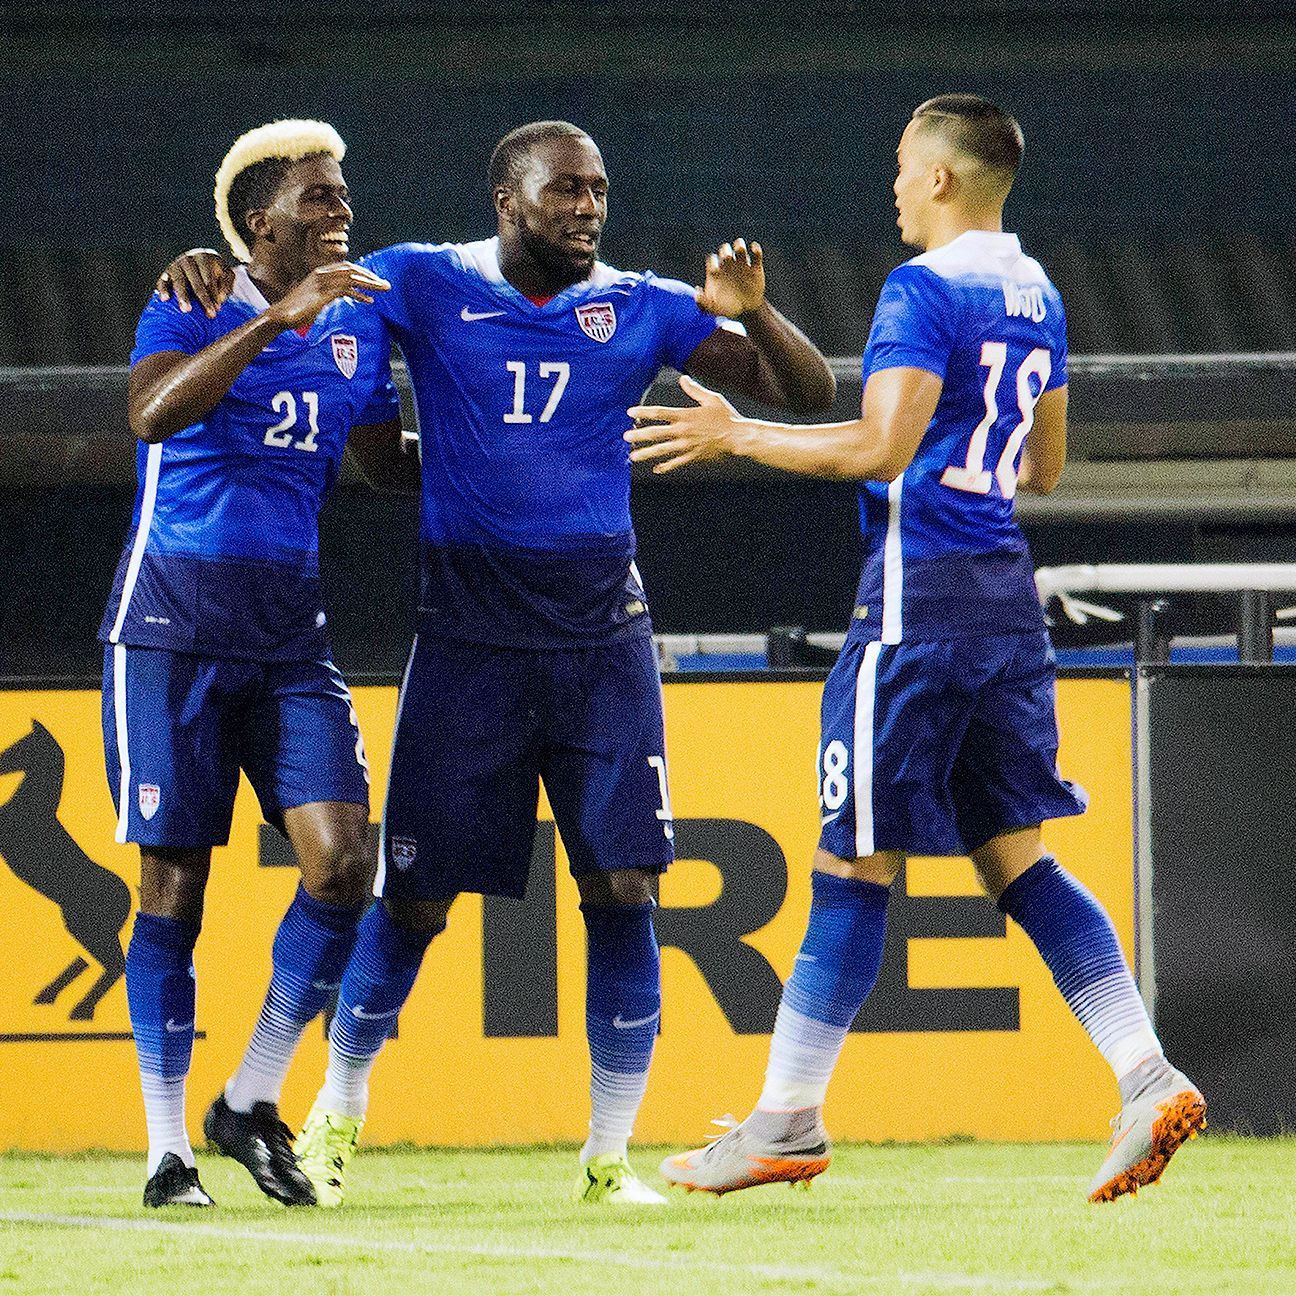 After a disappointing Gold Cup, Jozy Altidore's brace against Peru is a good sign for the U.S.